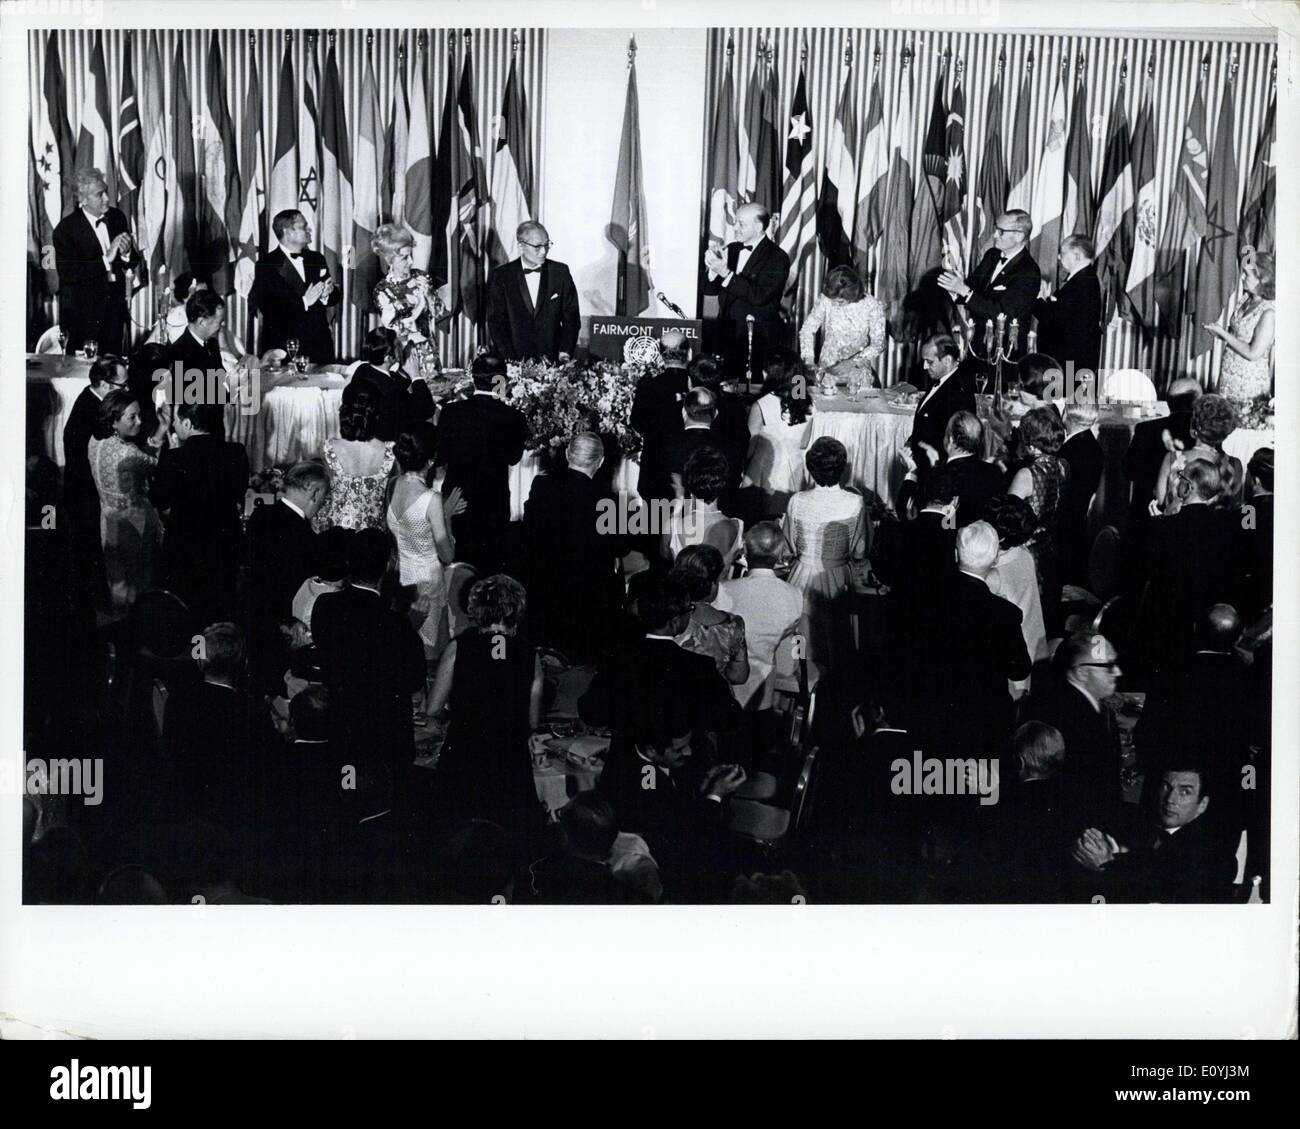 Jun. 26, 1970 - Ceremonies In San Francisco Mark Signing 25 Years Ago Of United Nations Charter: United Nations delegates on 26 - Stock Image